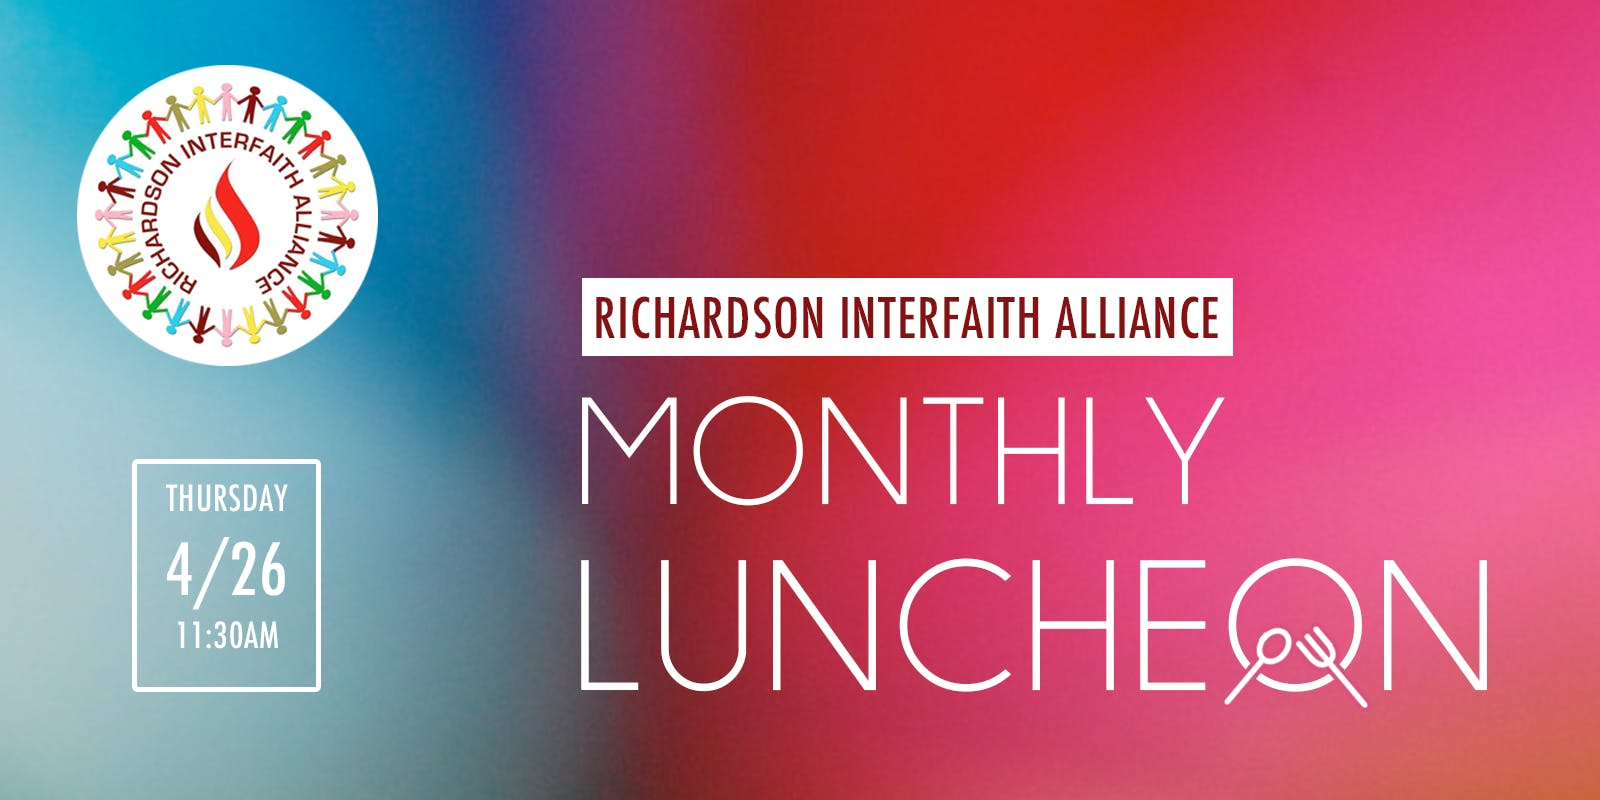 Richardson Interfaith Alliance Monthly Lunche